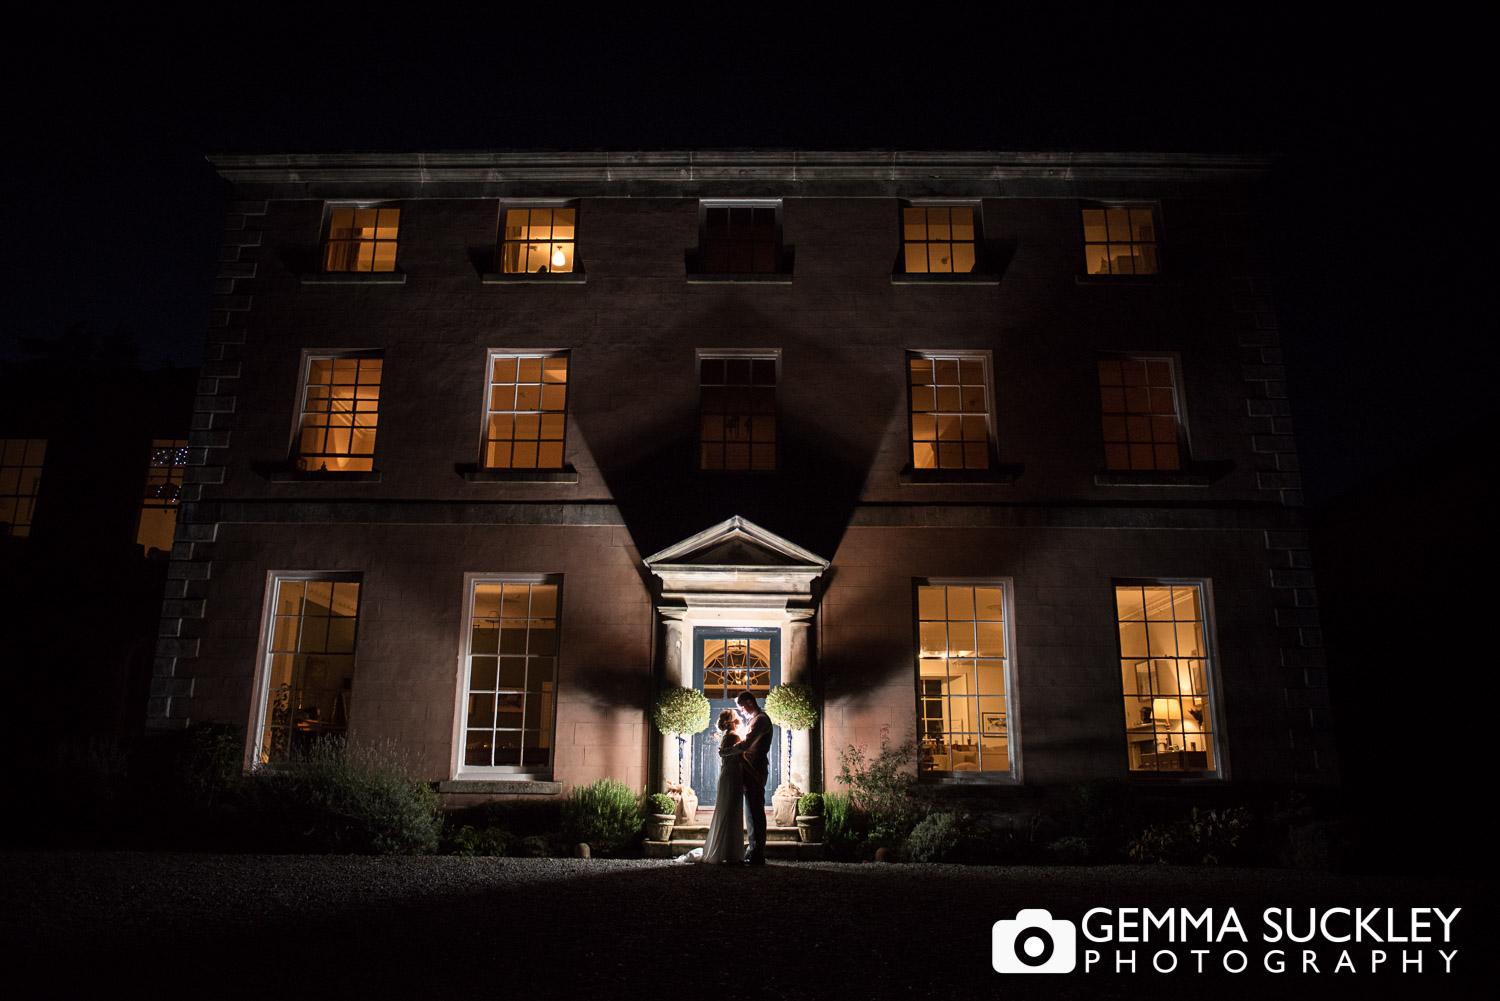 back lit photo of the bride and groom at belmount hall in the dark